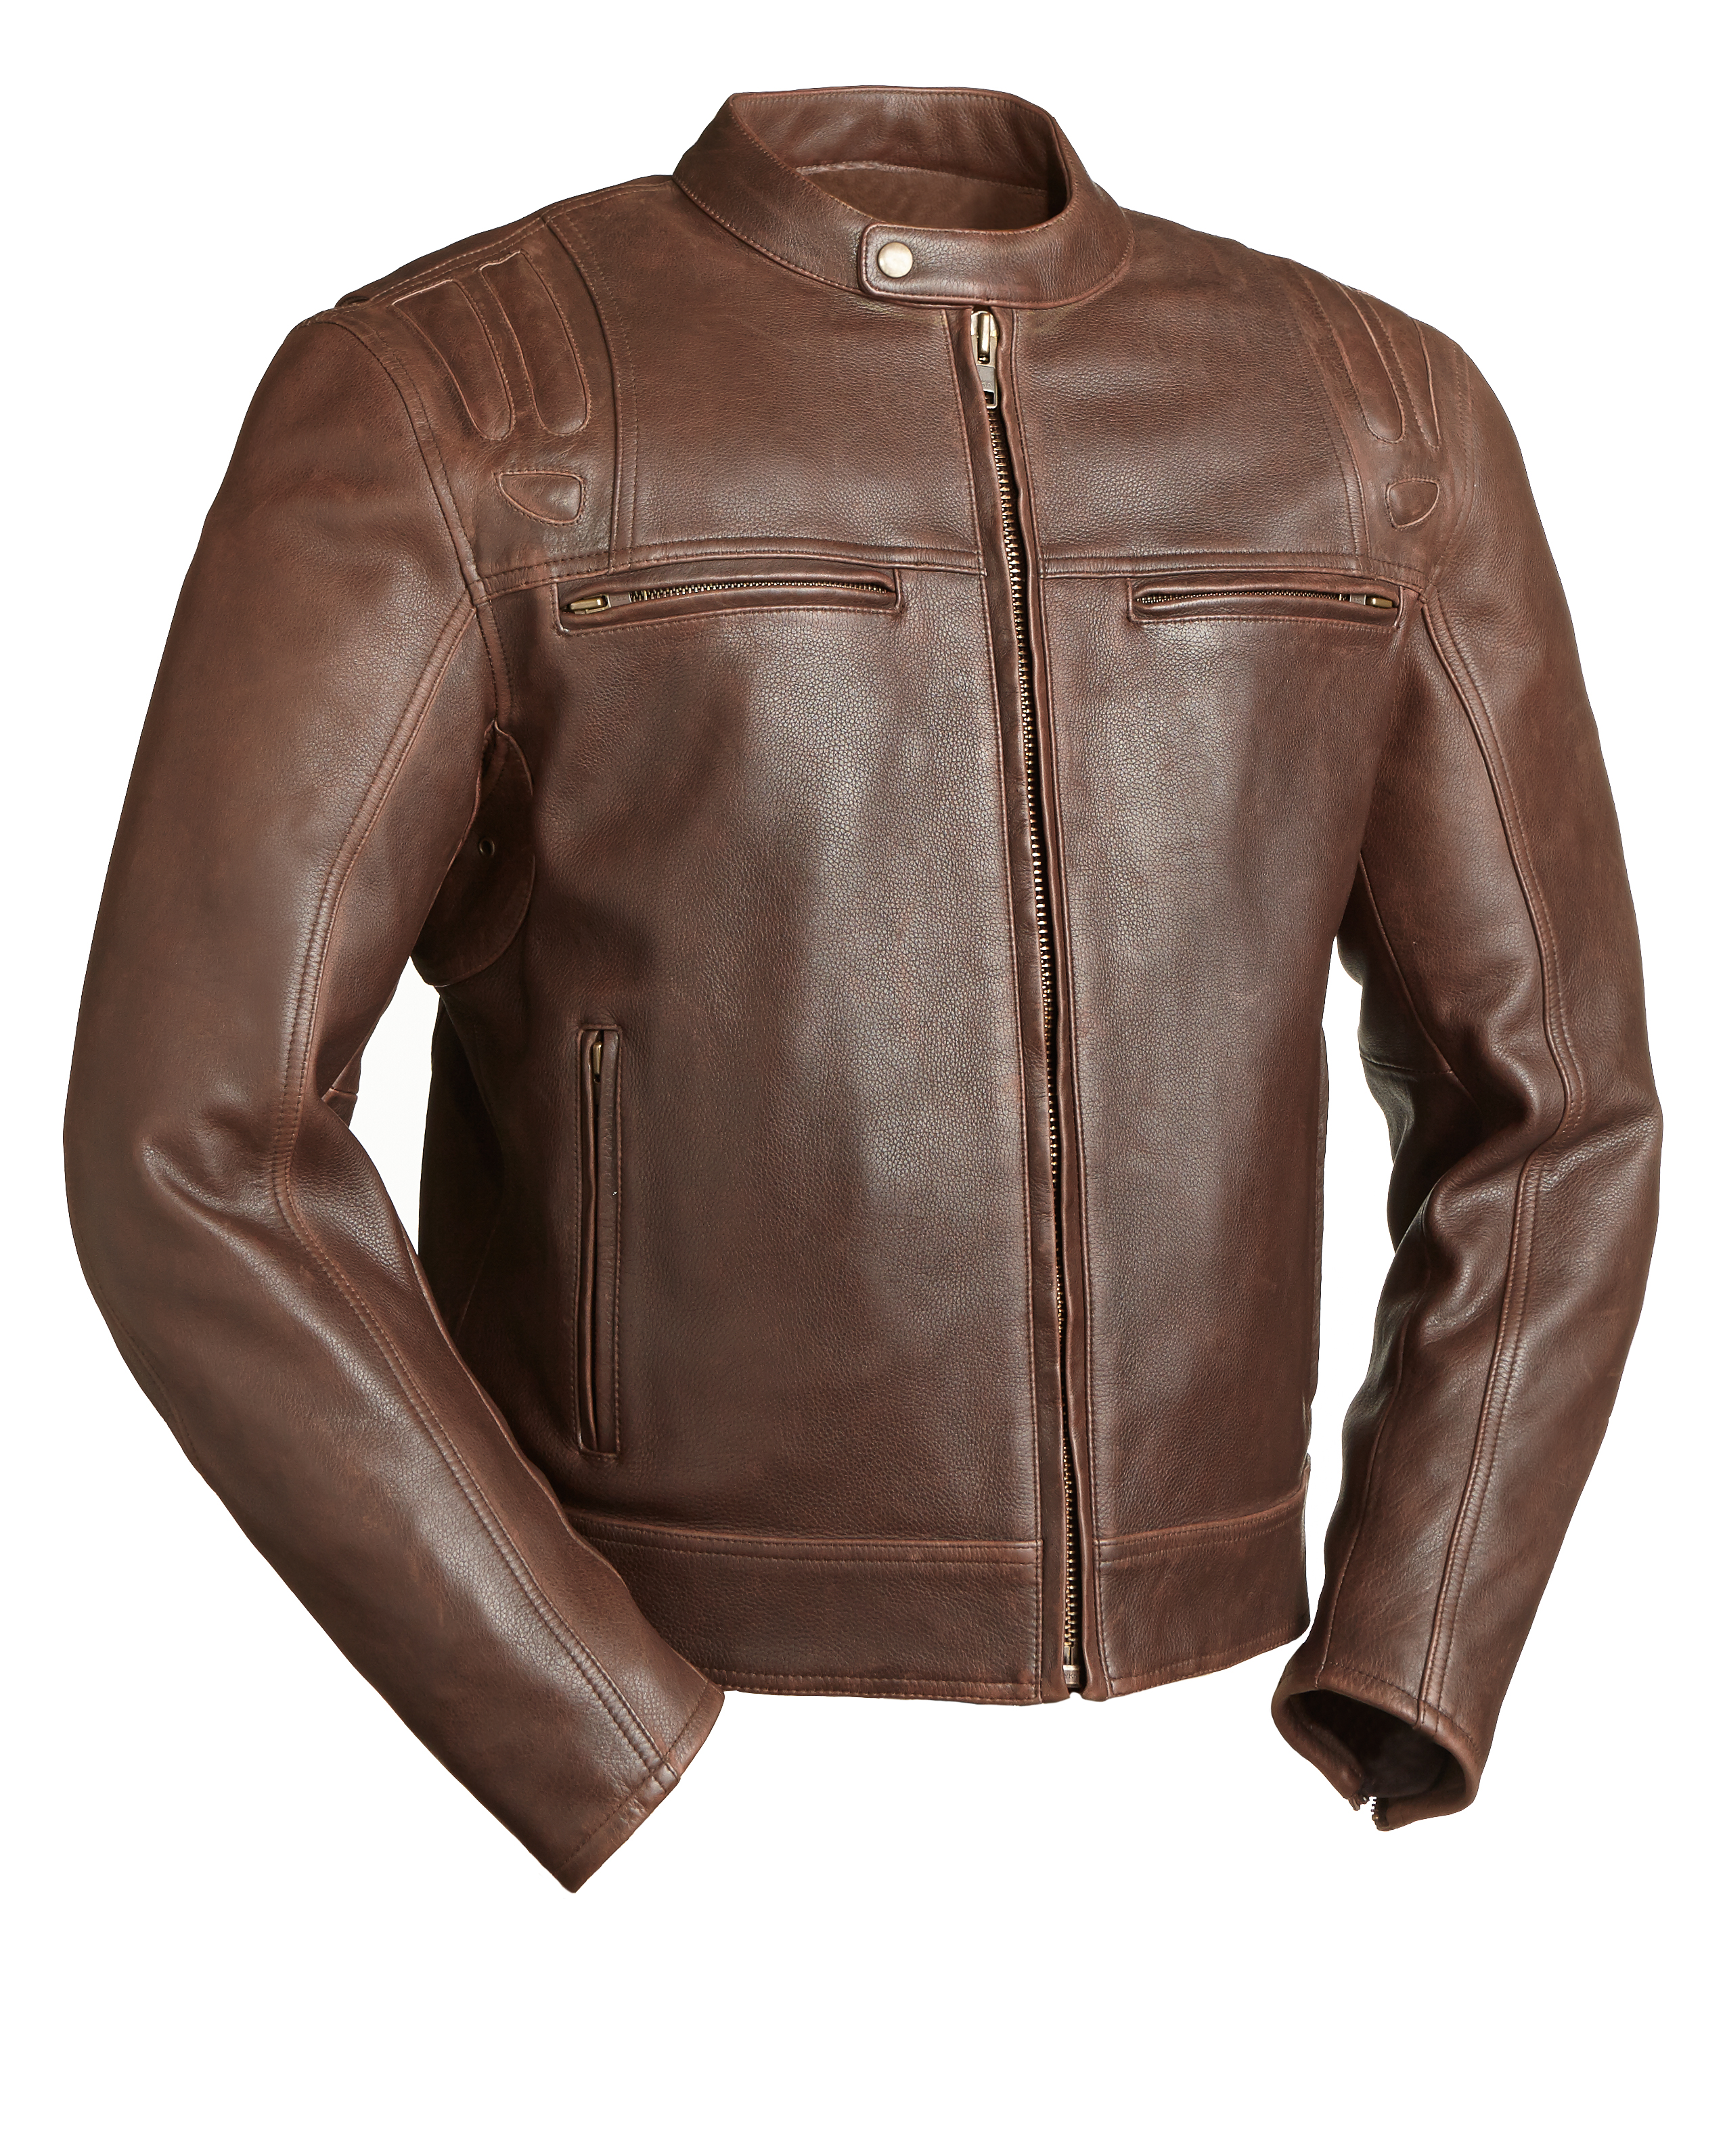 Carbon FIM241CAZ Men's Leather Motorcycle Jacket BROWN | First ...